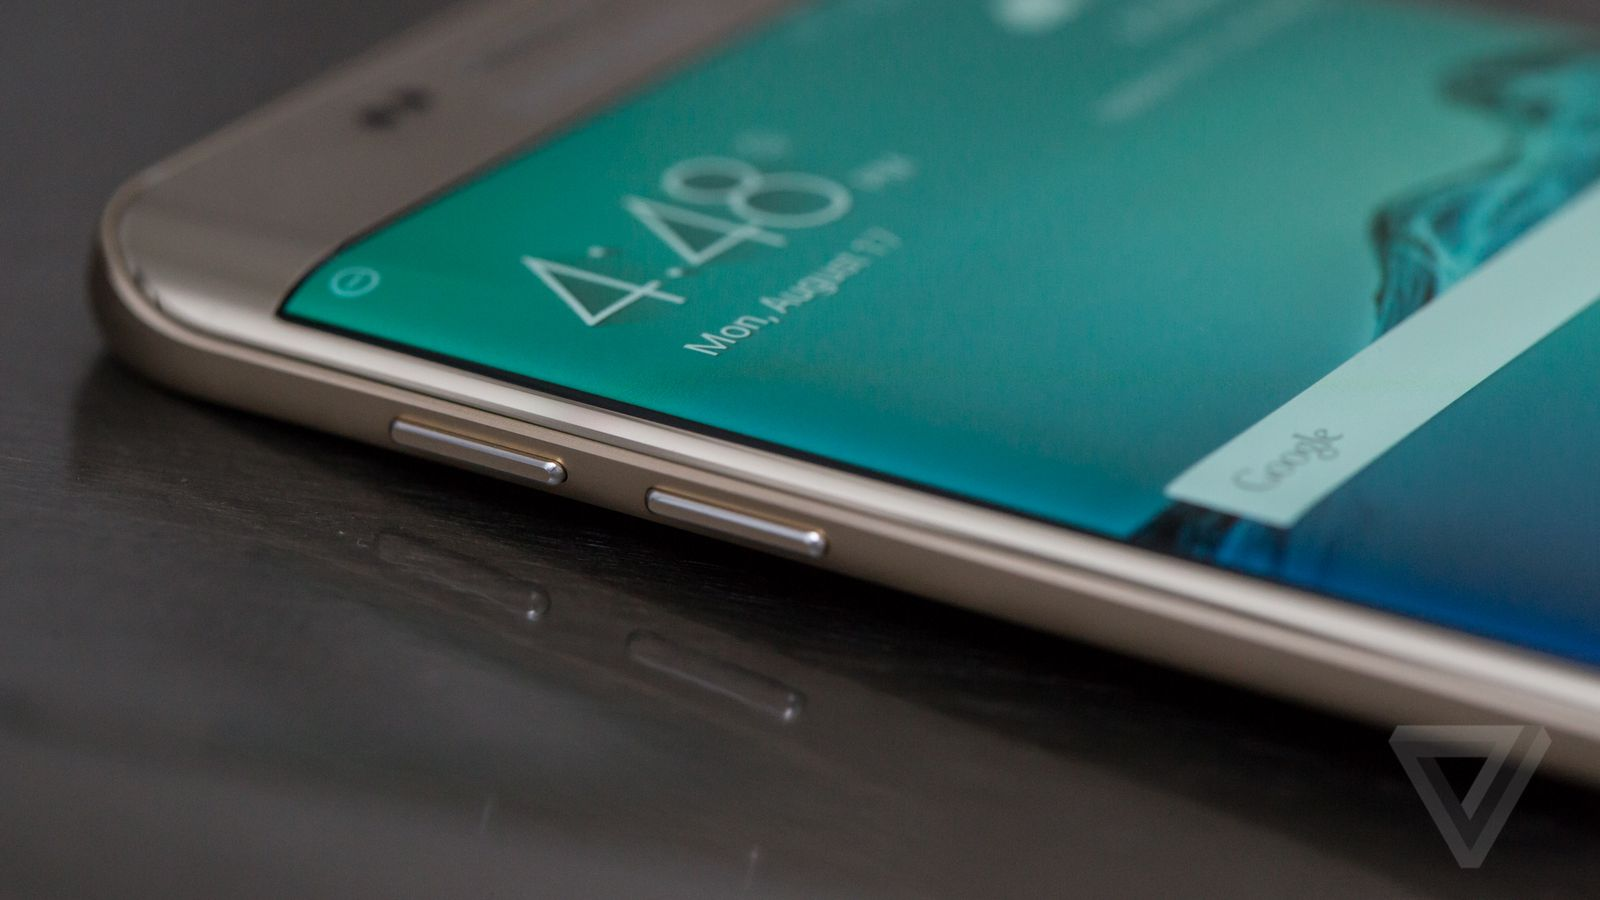 Samsung Starts Android Marshmallow Update With Galaxy S6